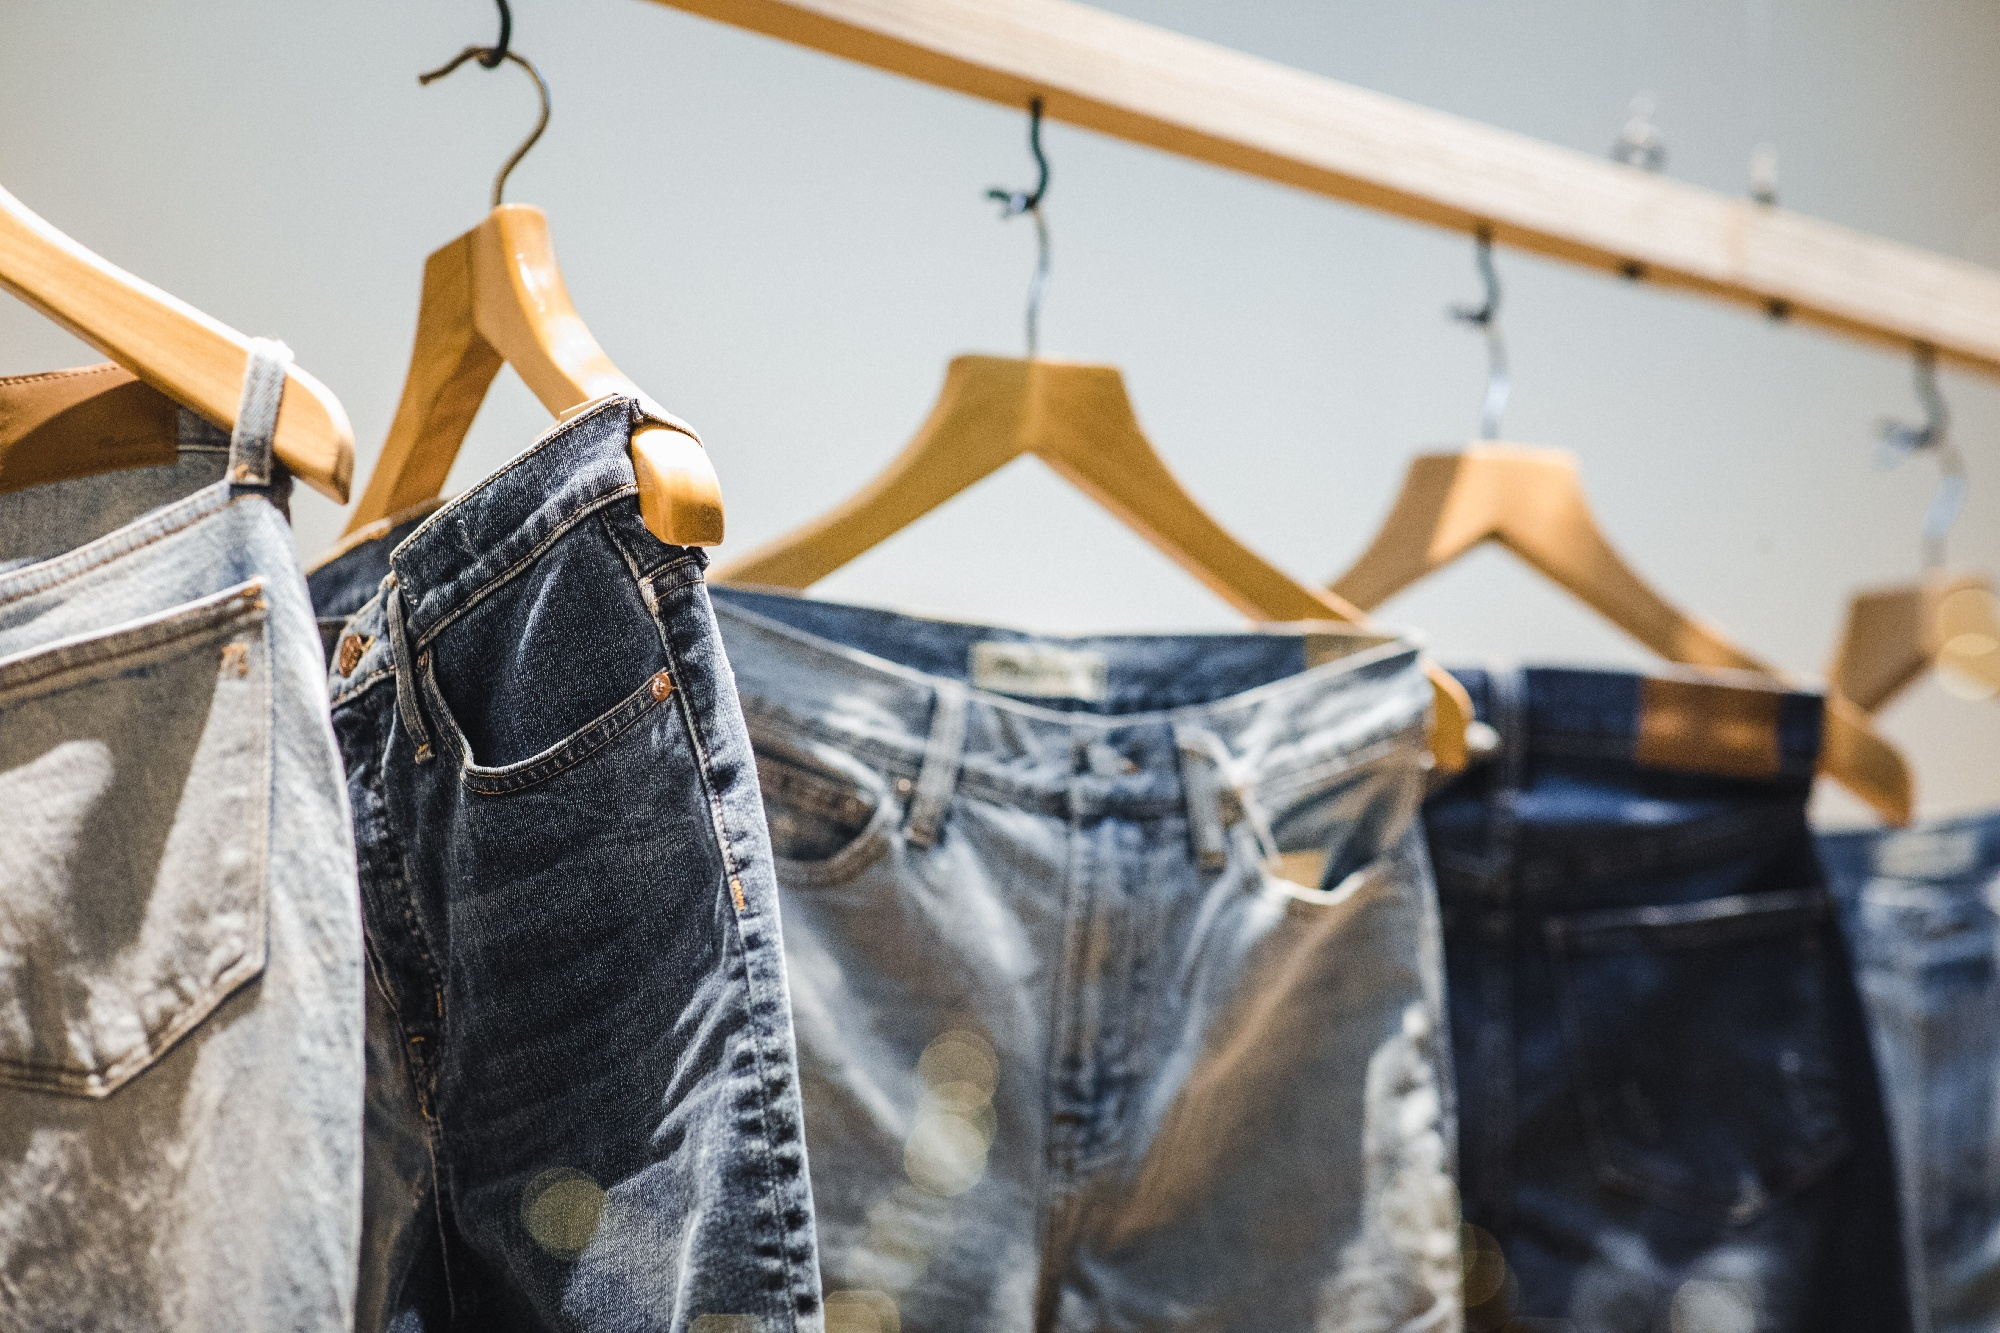 MakersValley Blog | 5 Ways Retailers Can Promote a More Sustainable Denim Industry